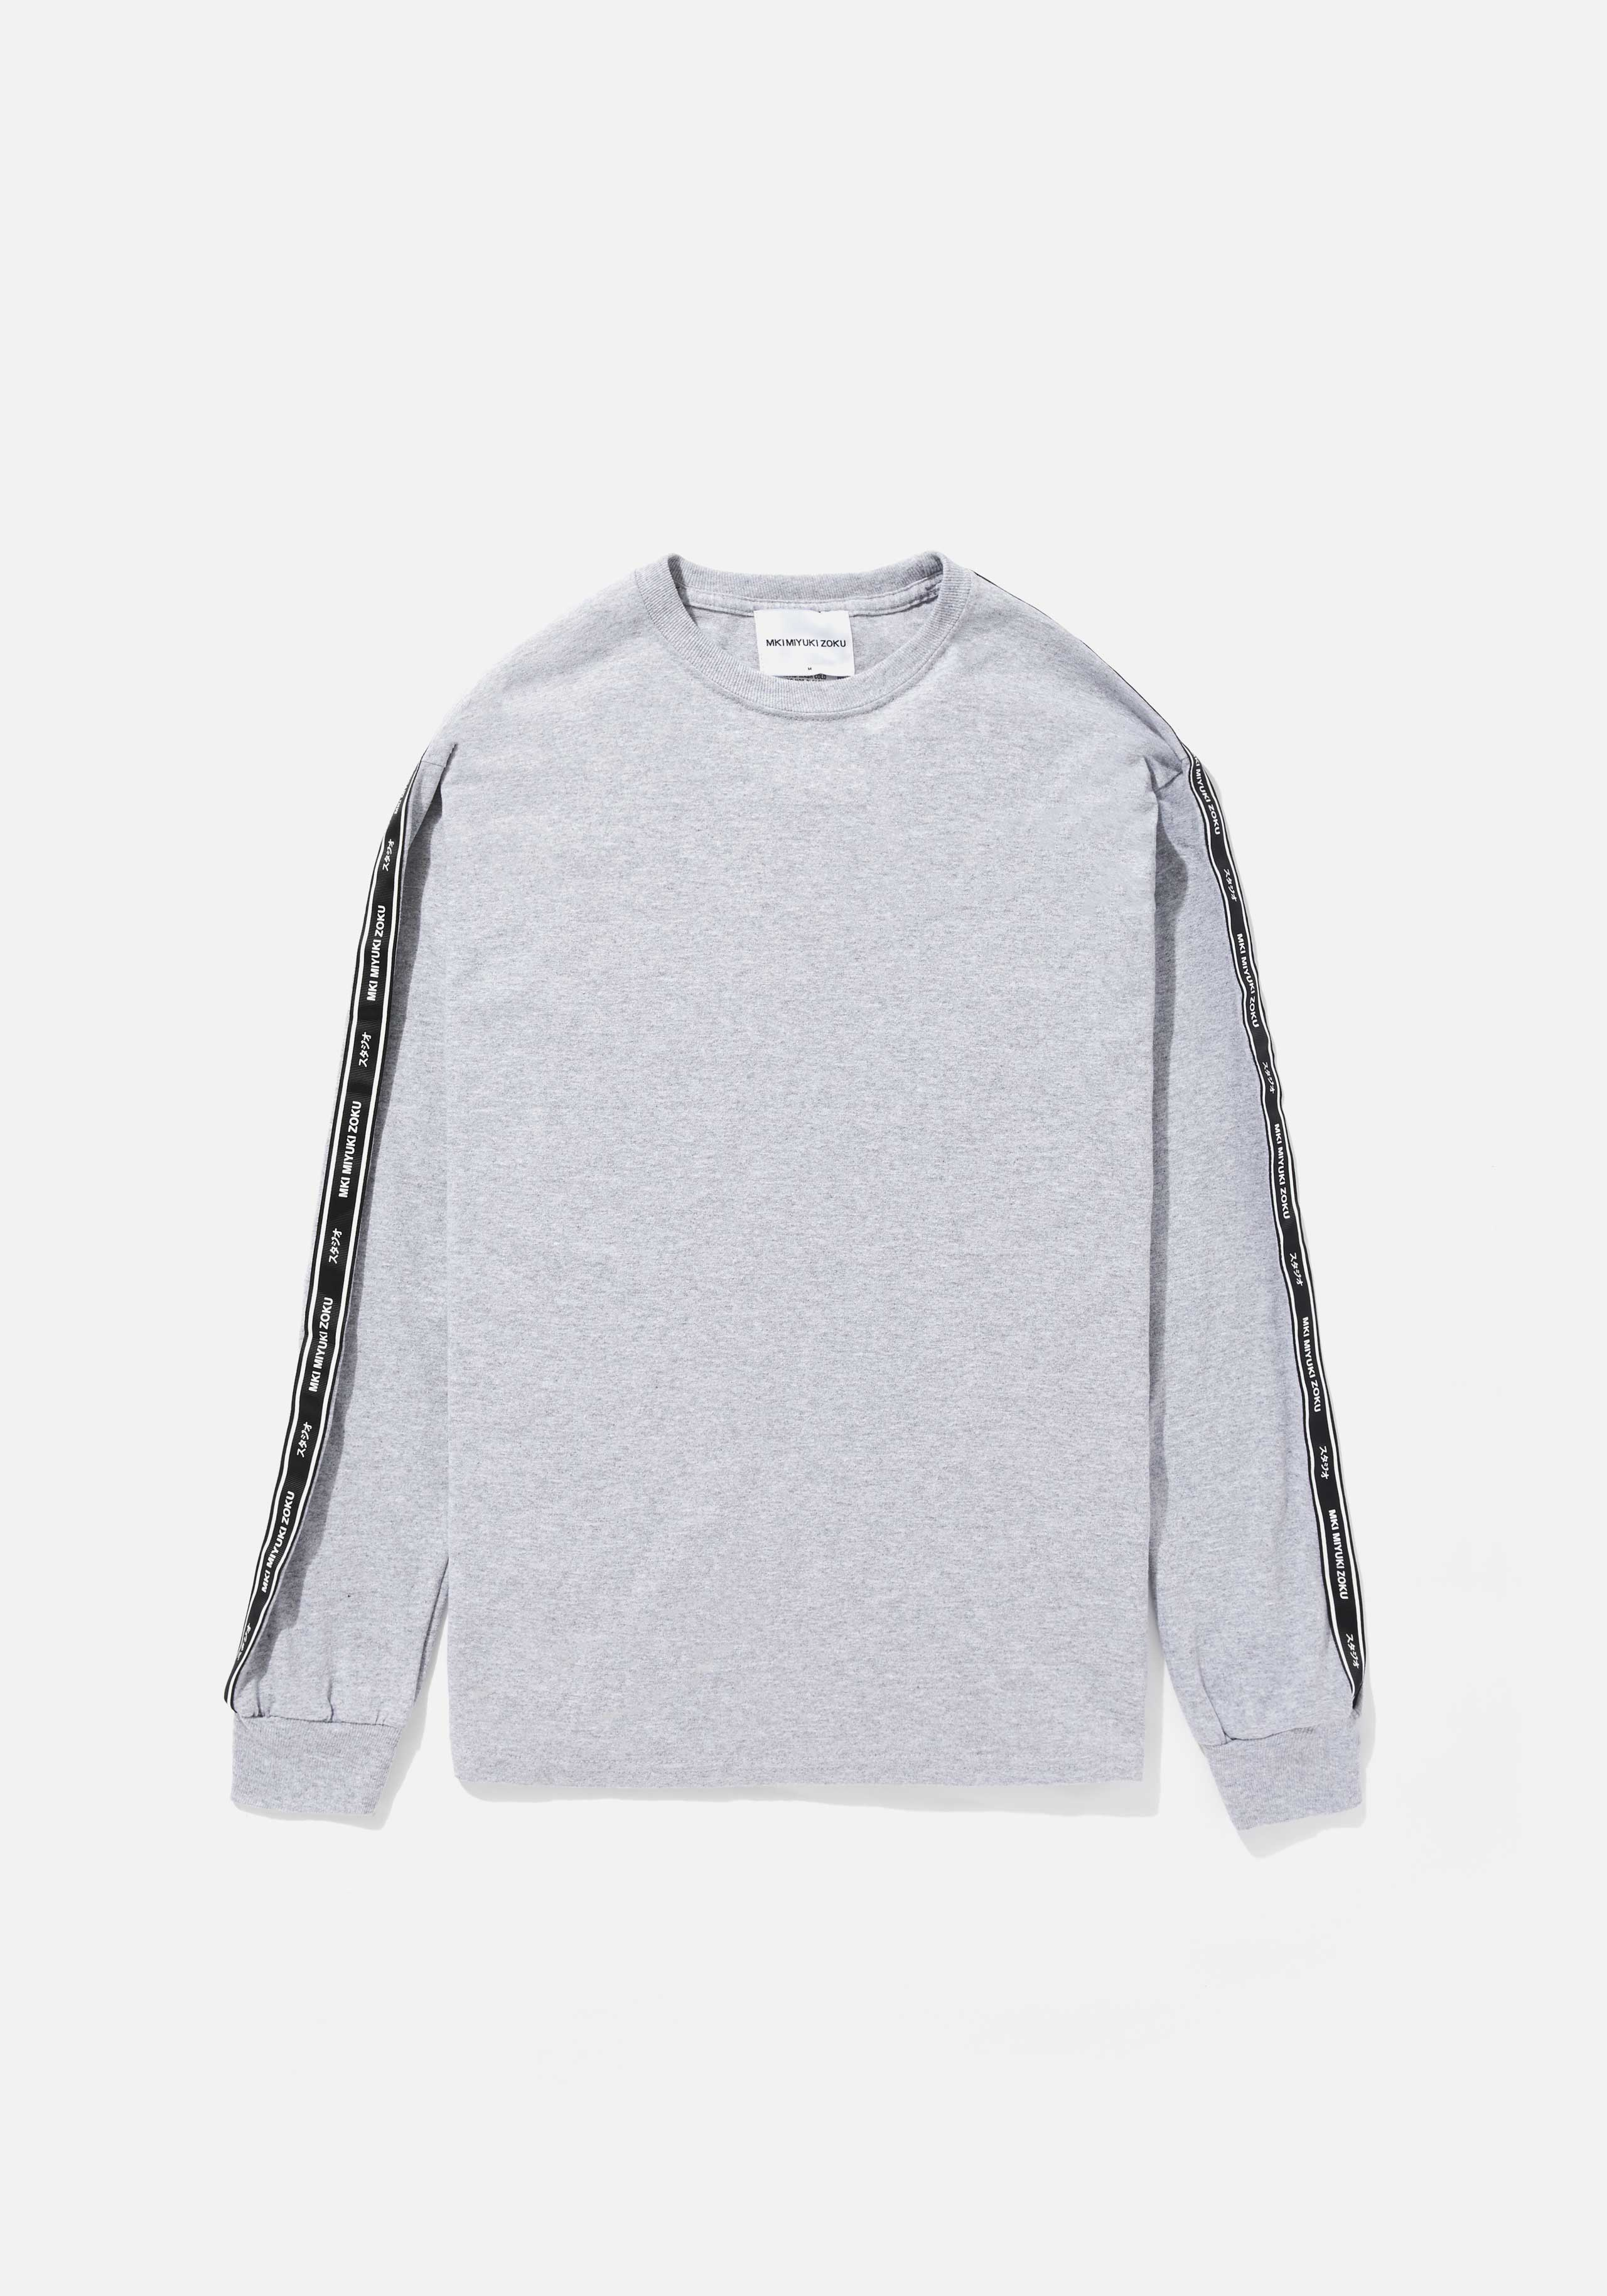 mki tape long sleeve 1